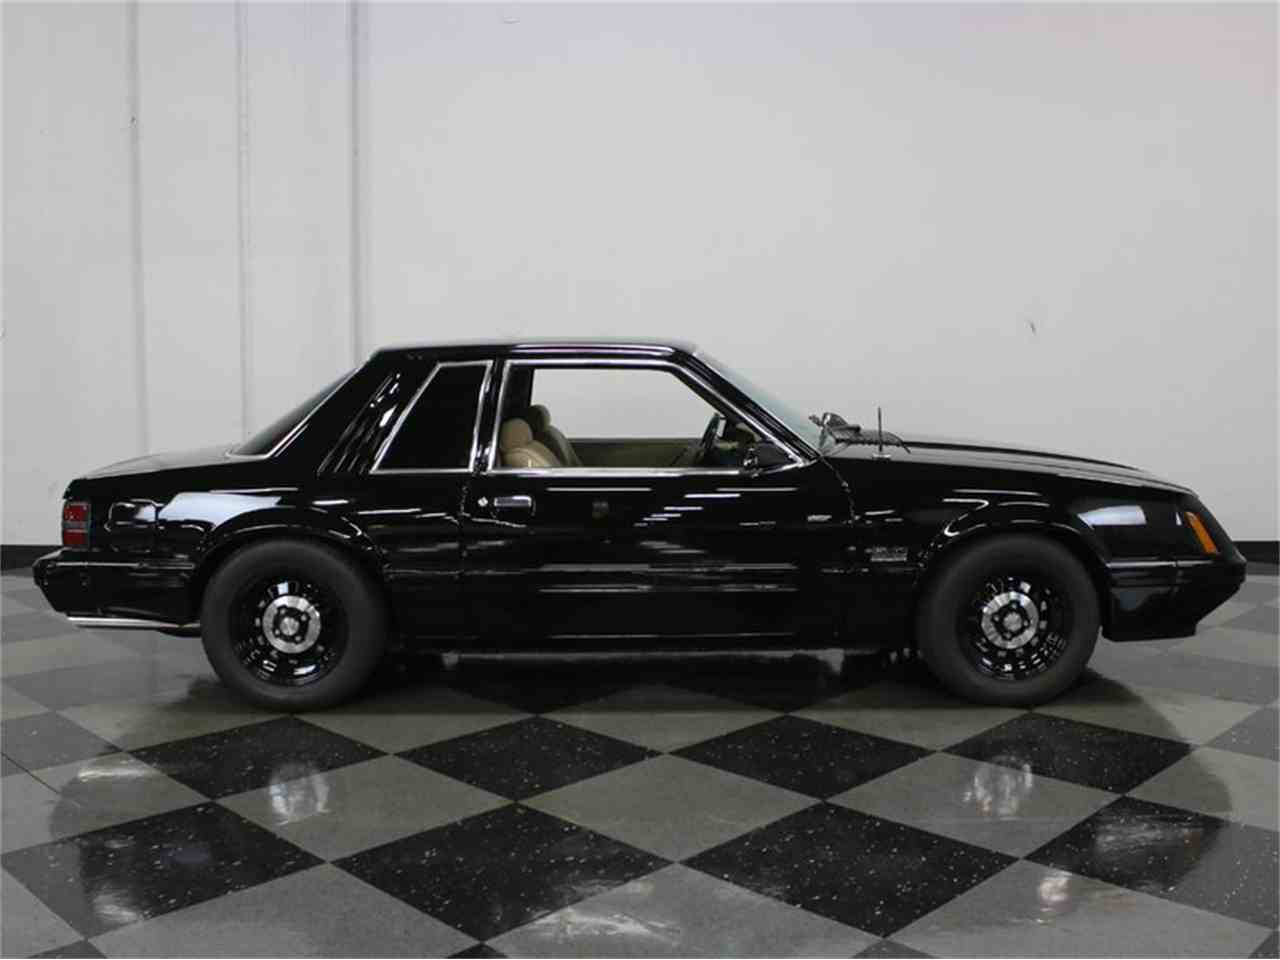 Large Picture of 1986 Ford Mustang SSP Interceptor located in Ft Worth Texas - $24,995.00 - JZNT